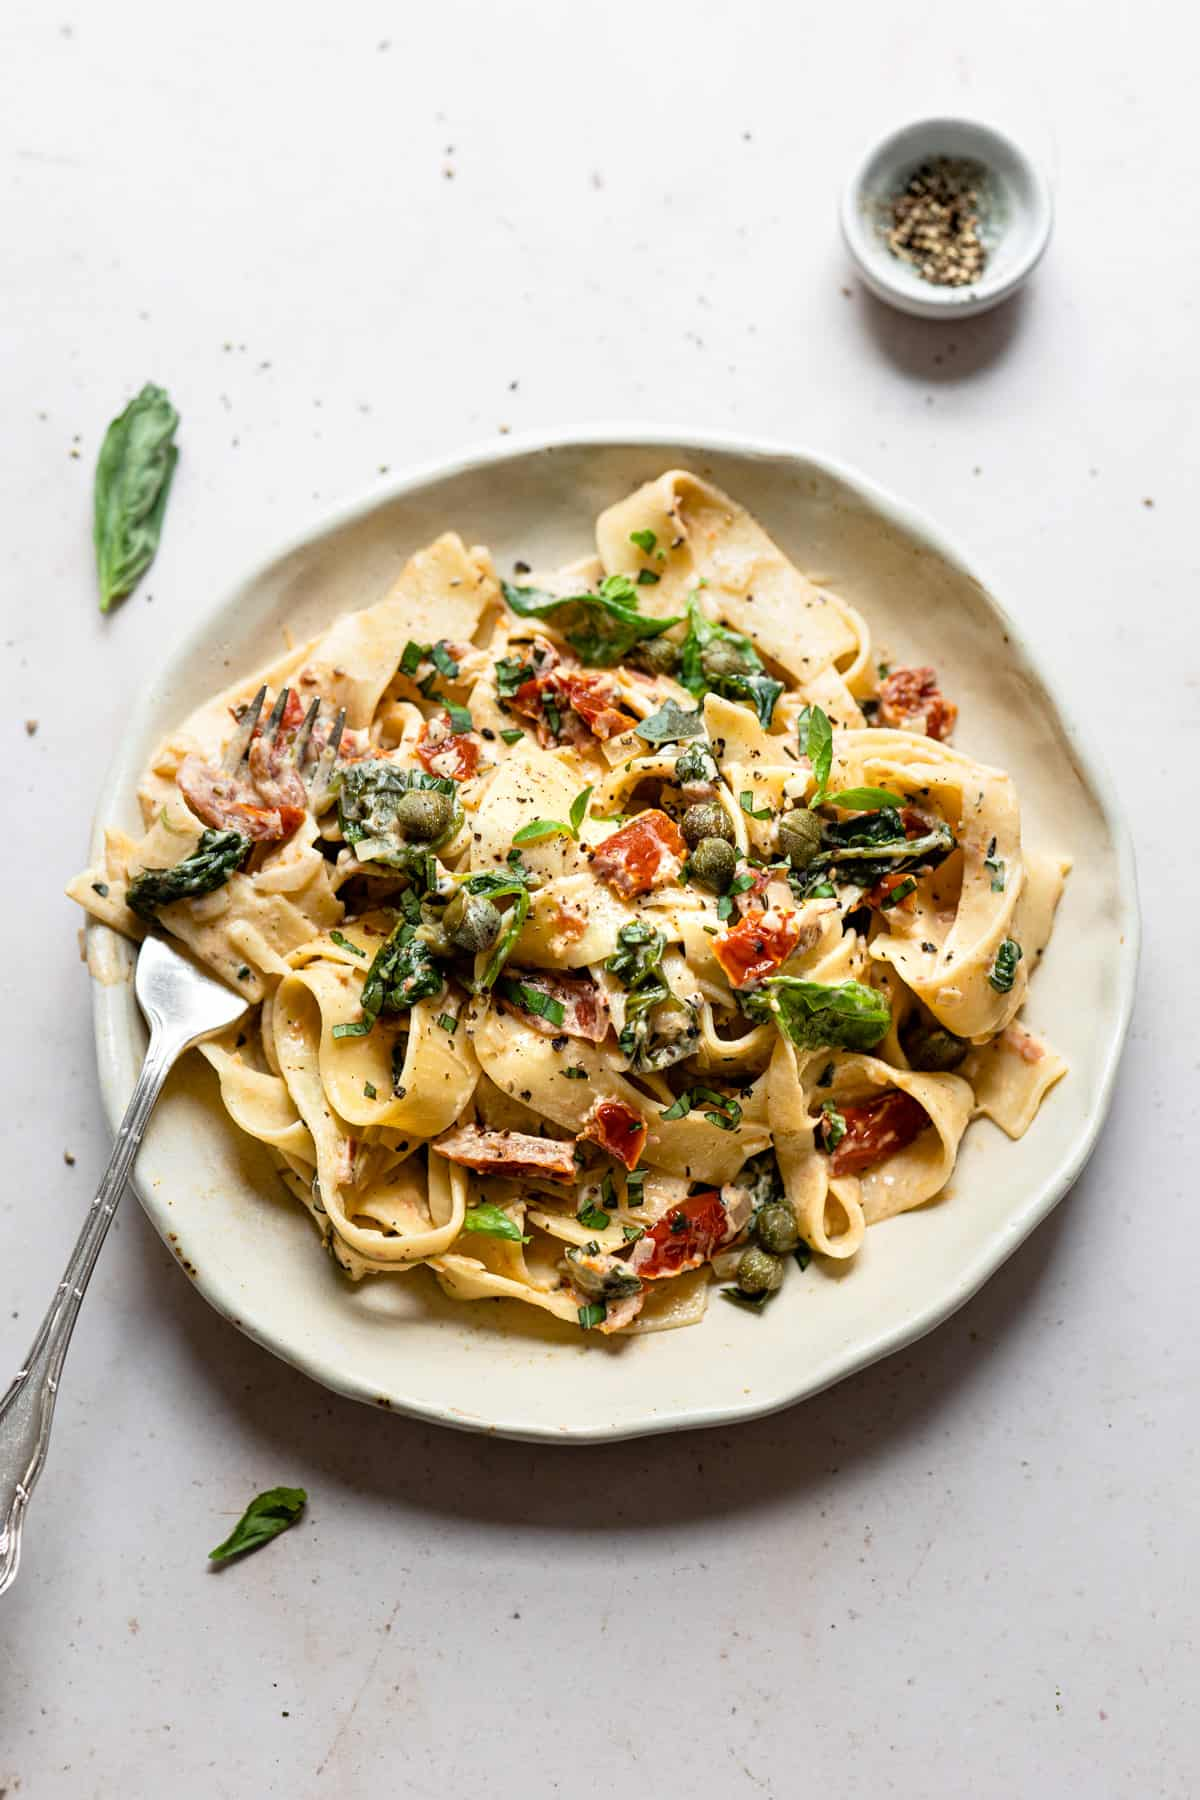 Sundried tomato pasta on a white plate with a fork.- Aldi recipes